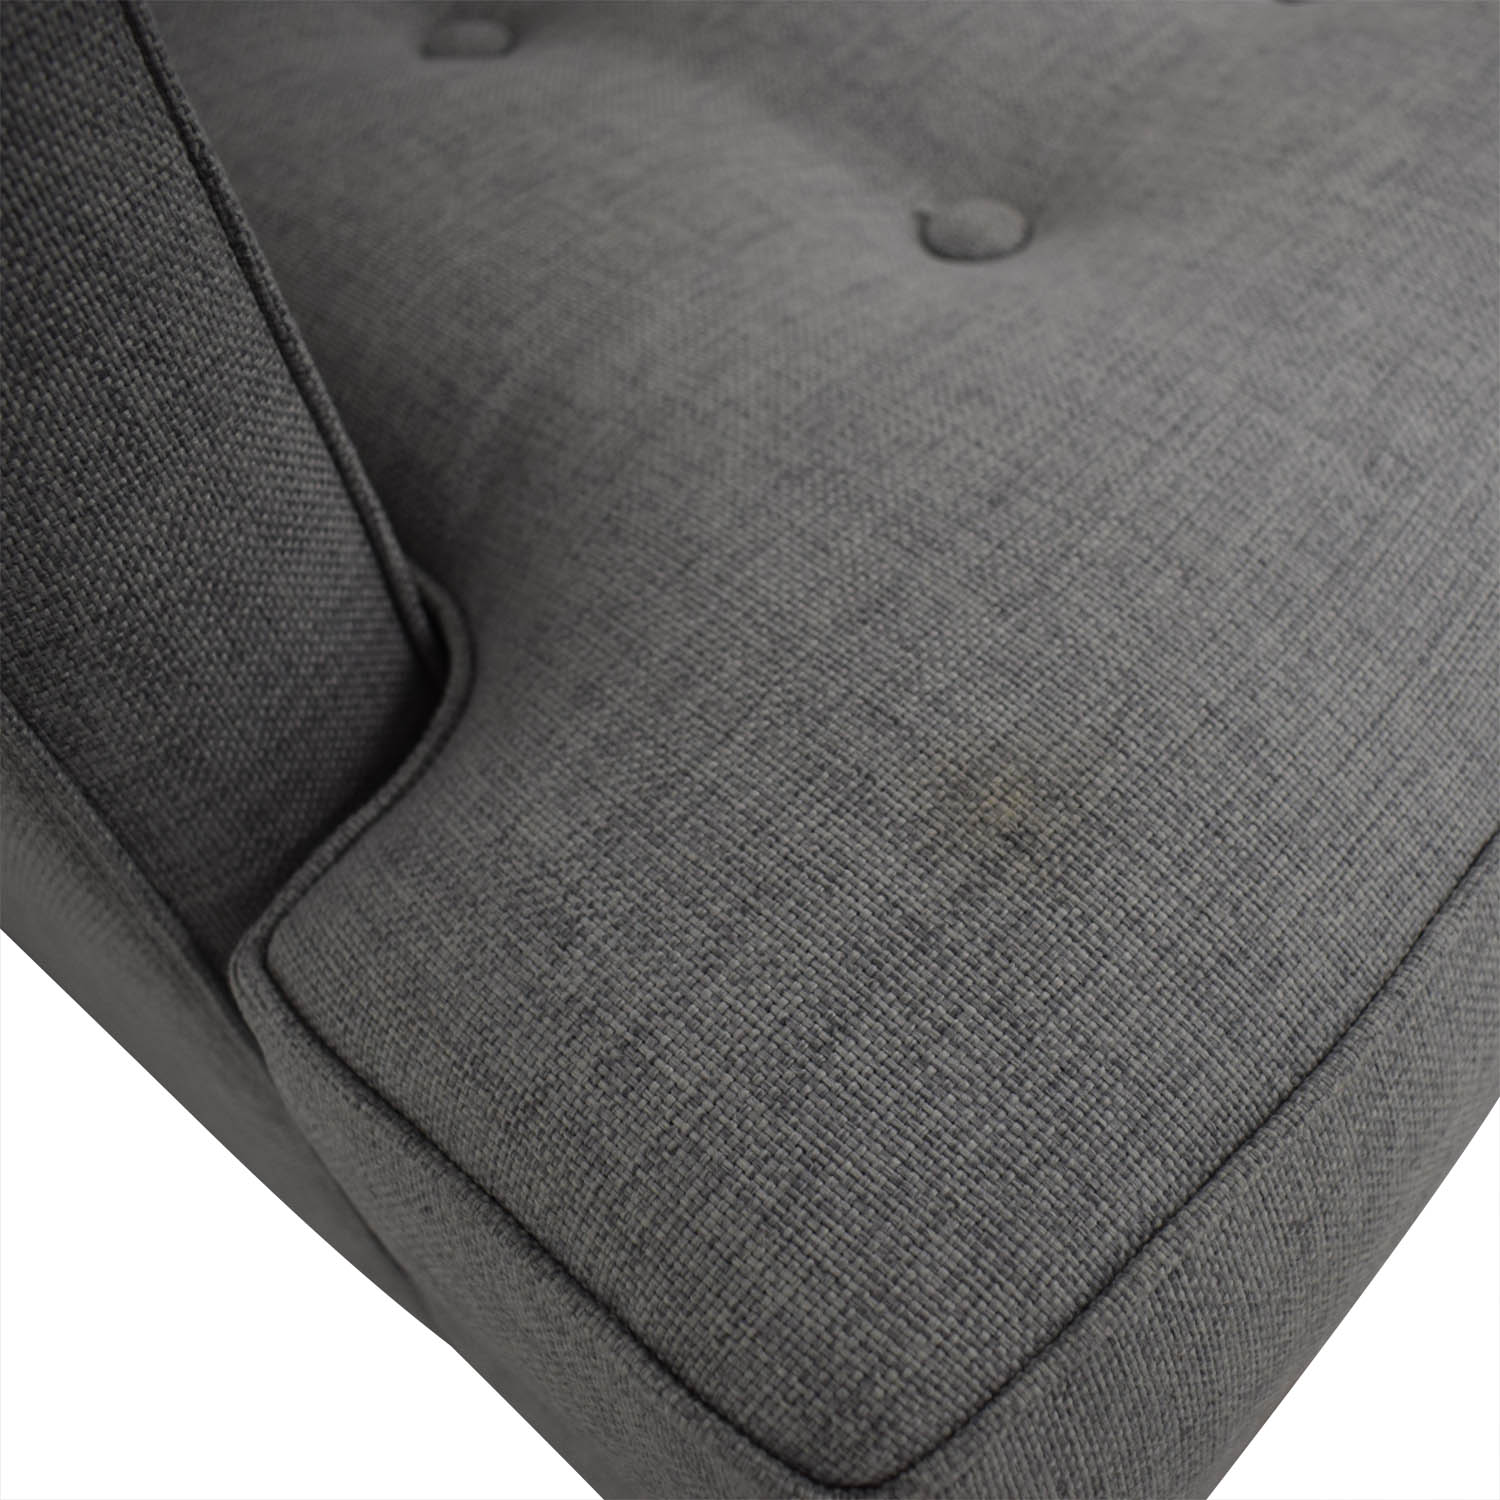 West Elm West Elm Peggy Feather Gray Heathered Crosshatch Tufted Sofa nyc